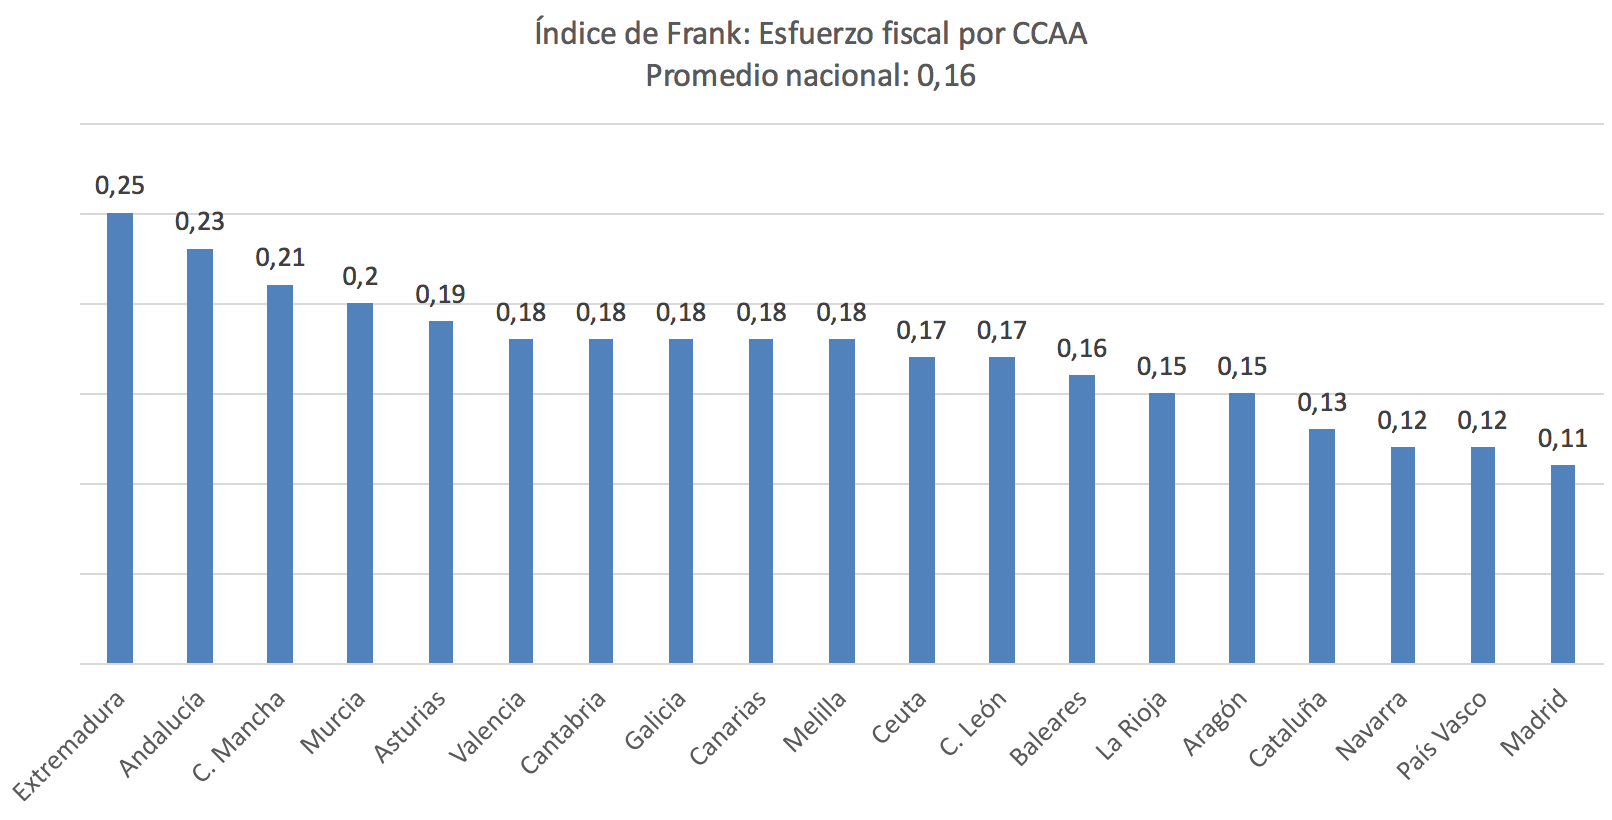 indice-frank-esfuerzo-fiscal-2018.png